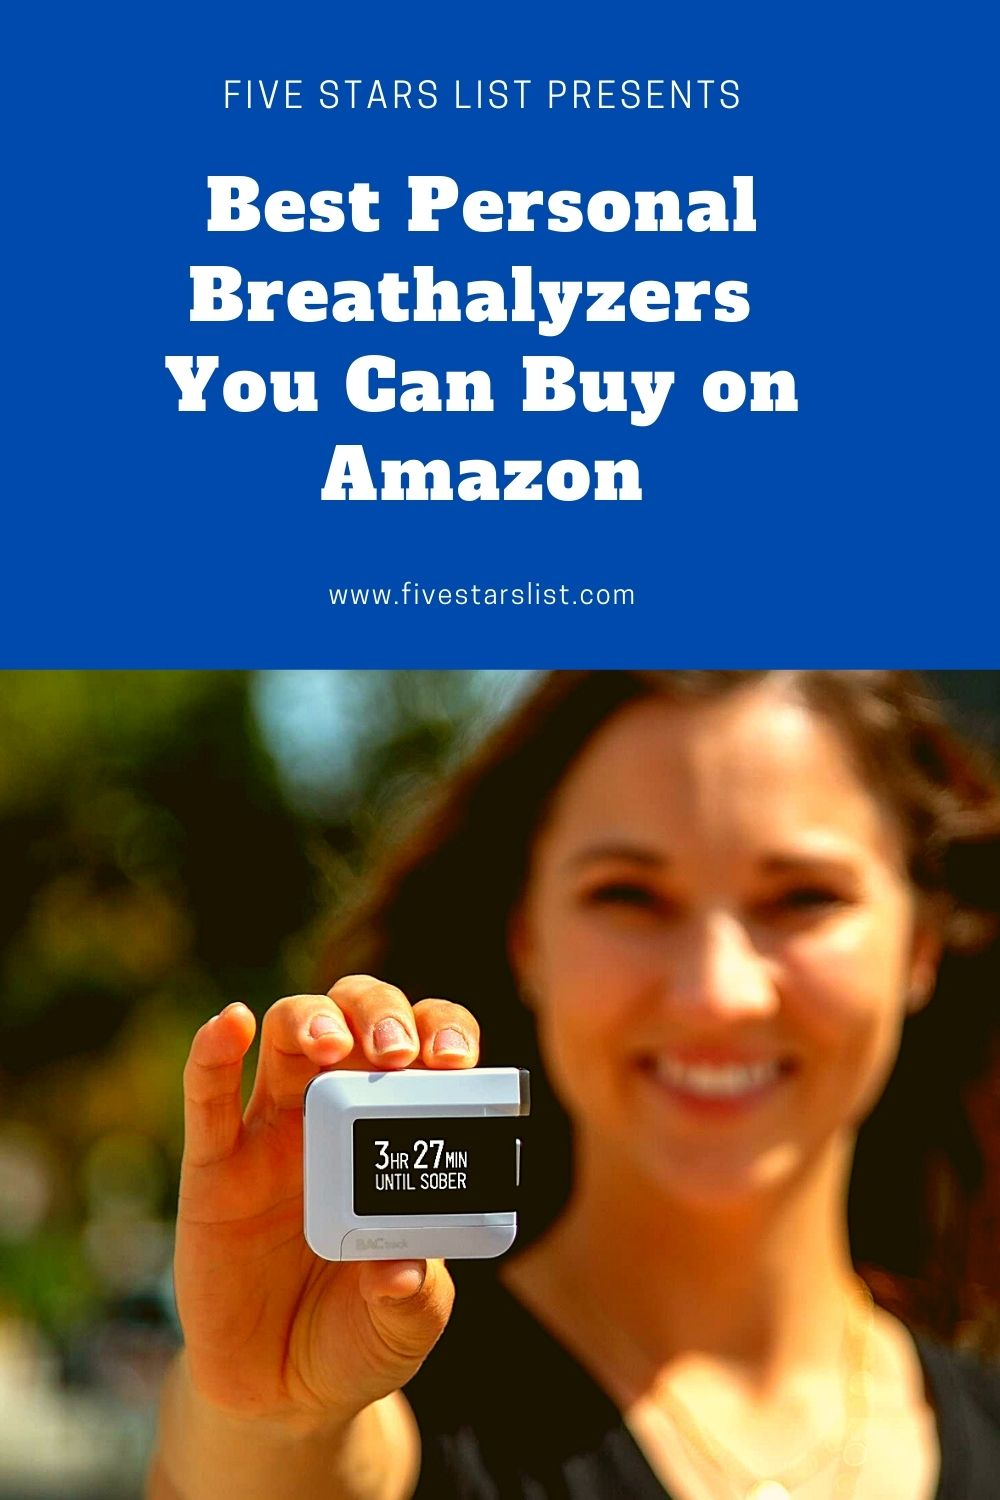 Best Personal Breathalyzers You Can Buy on Amazon